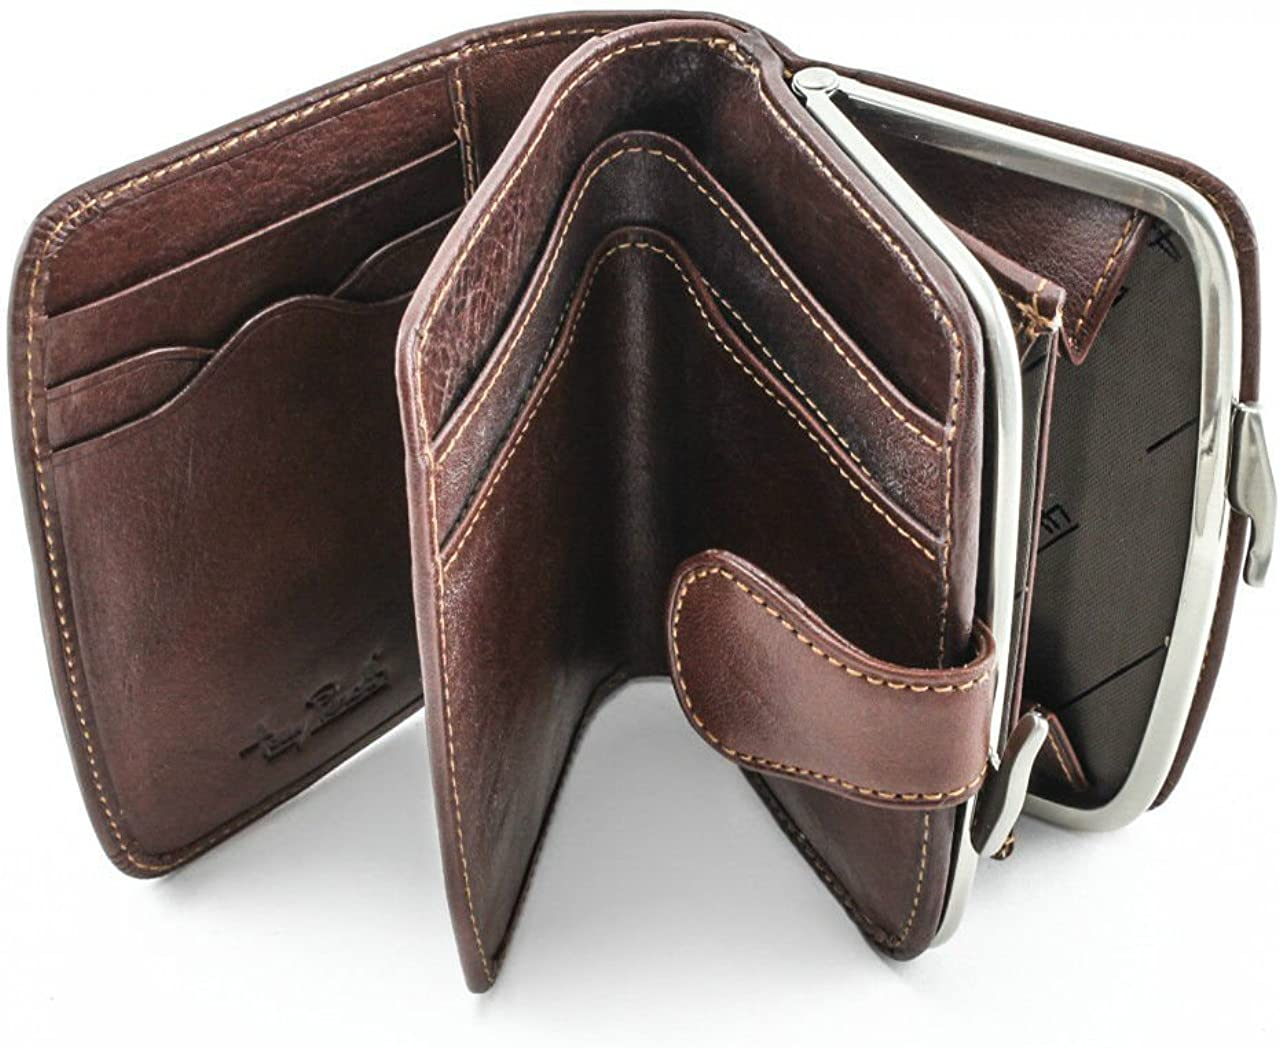 Tony Perotti Womens Italian Bull Leather Framed Euro Expandable Coin Purse and Credit Card Wallet with ID Window